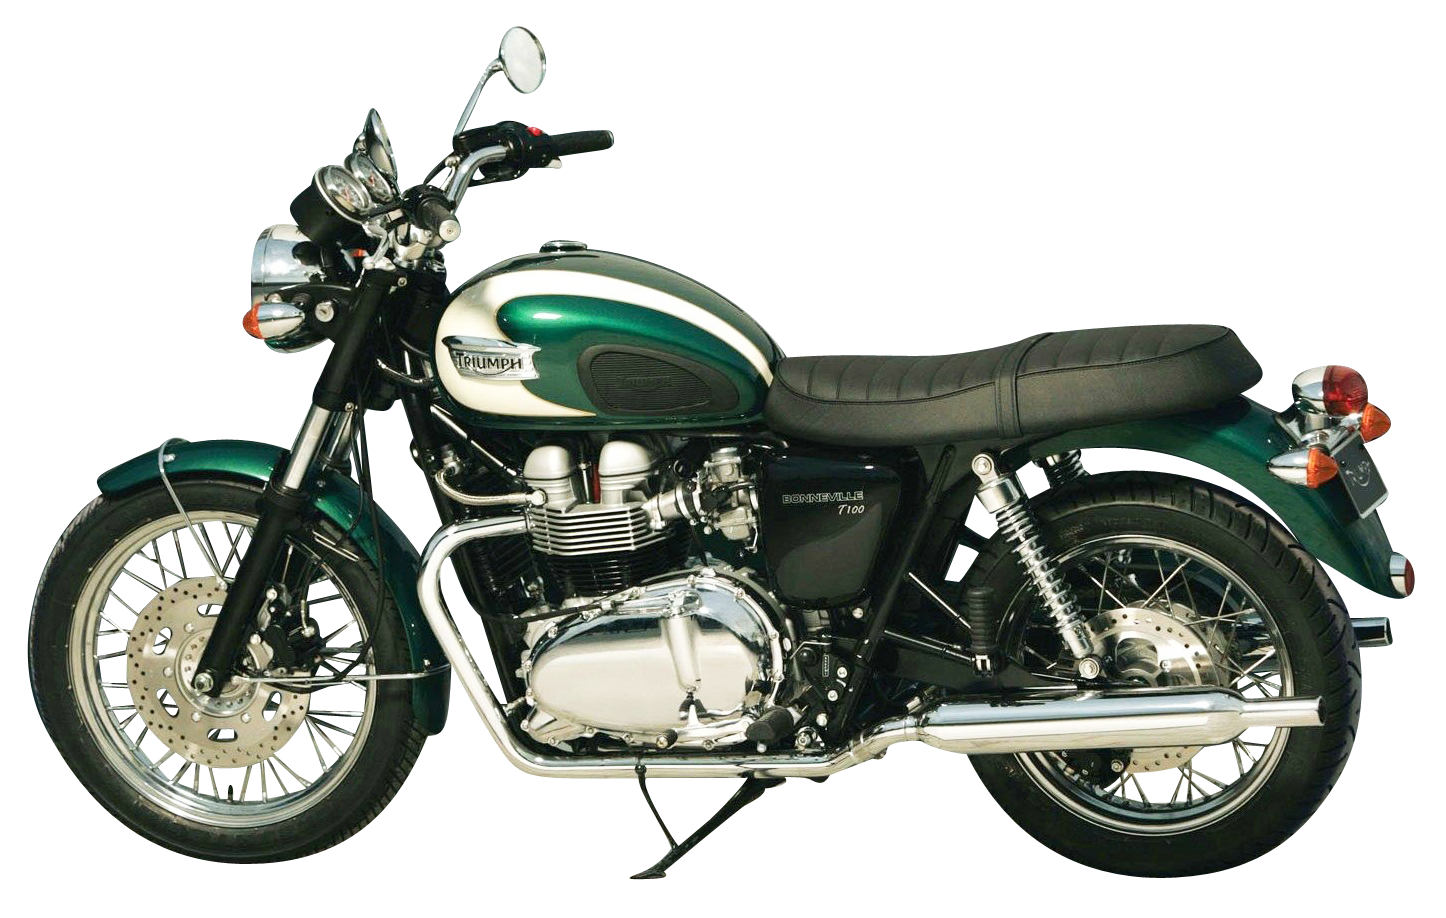 Motorcycle clipart motorcycle tank. Triumph bonneville t bike